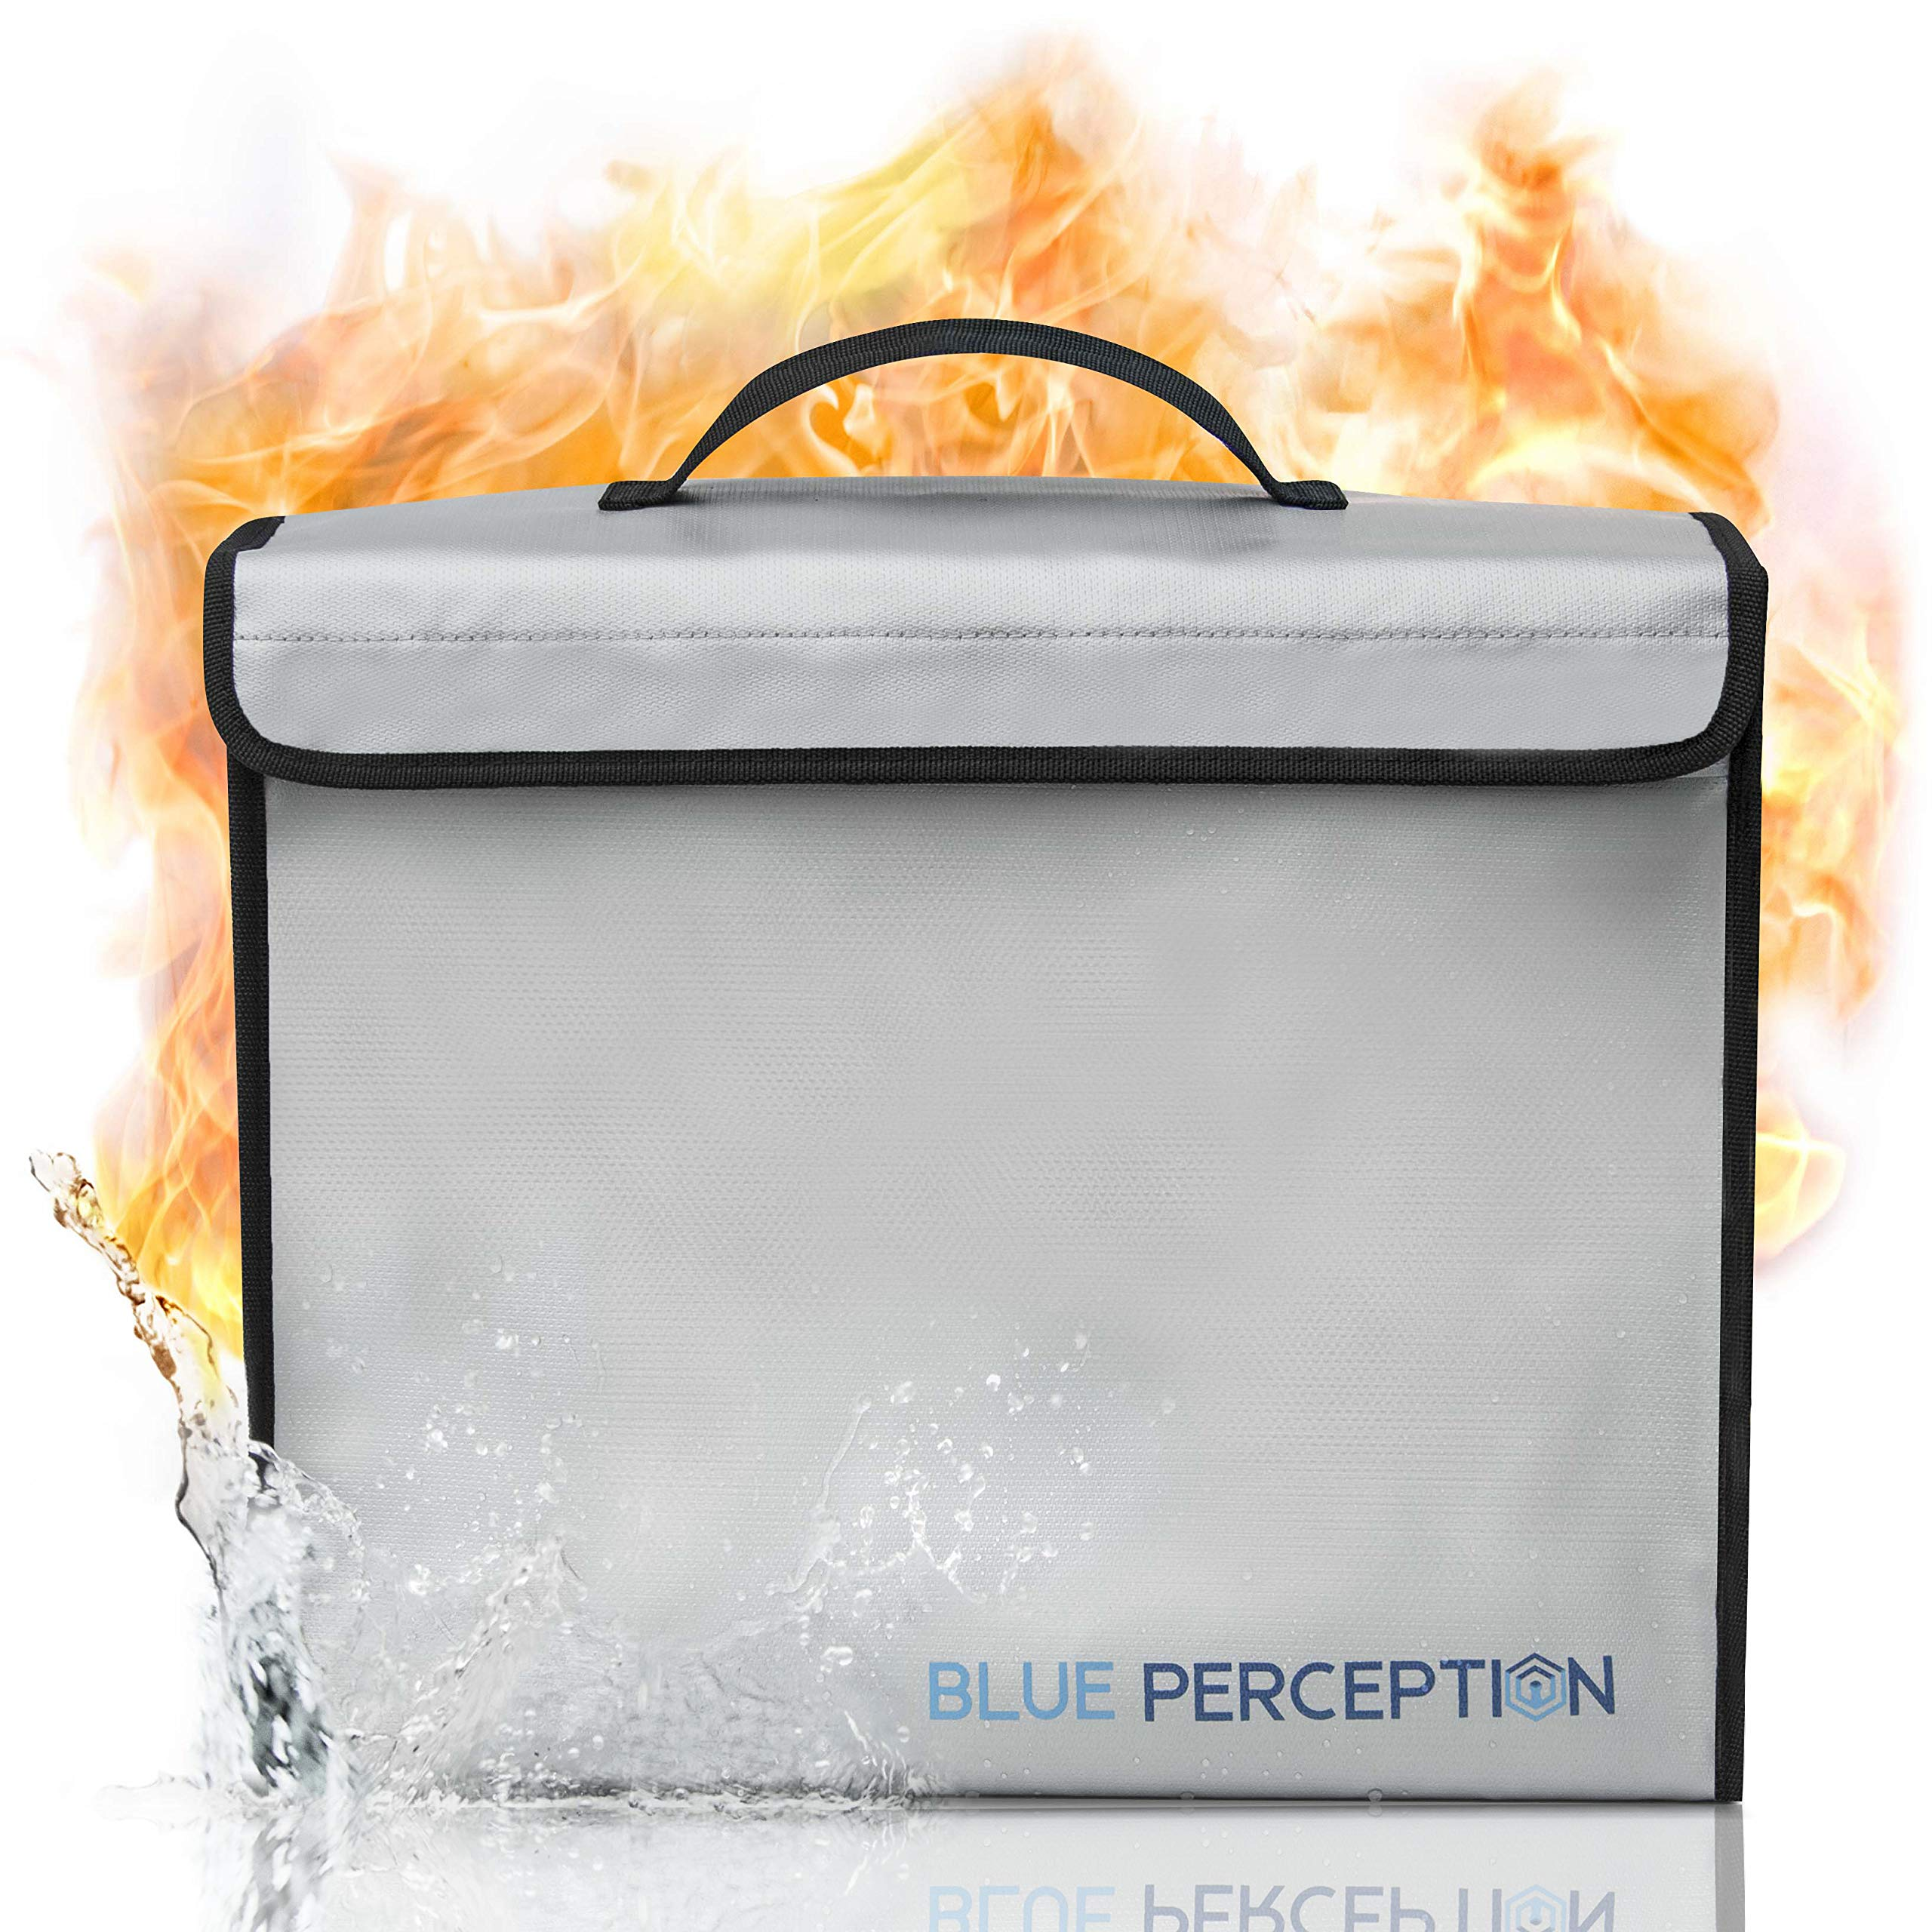 BLUE PERCEPTION Fireproof Document Bags, Premium Waterproof and Fireproof Safe Money Bag up to 1832°F, Large (15''x12''x5'') Fire Proof Water Proof Safe for Important Documents, Cash, Valuables, Passport